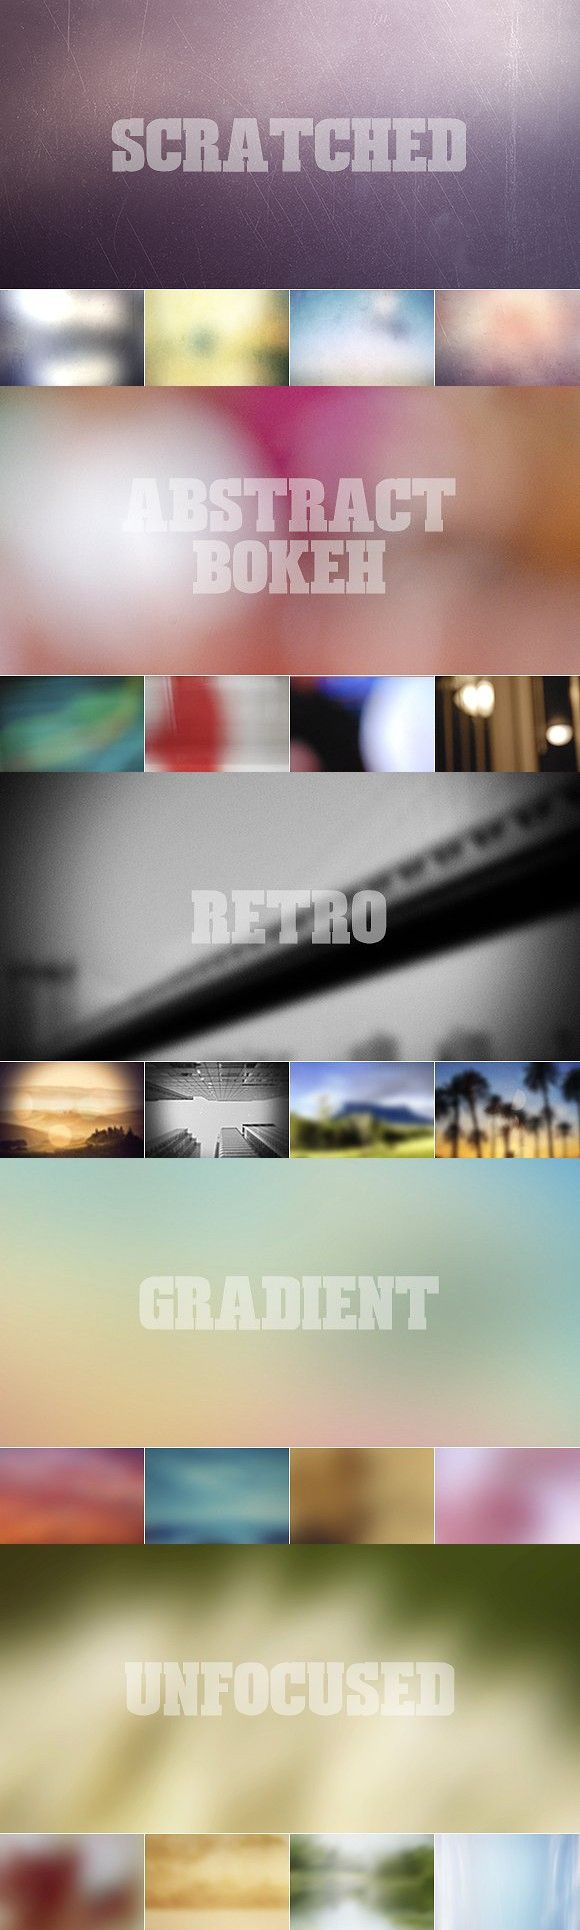 82 Blurred Backgrounds Bundle #abstract #blurred